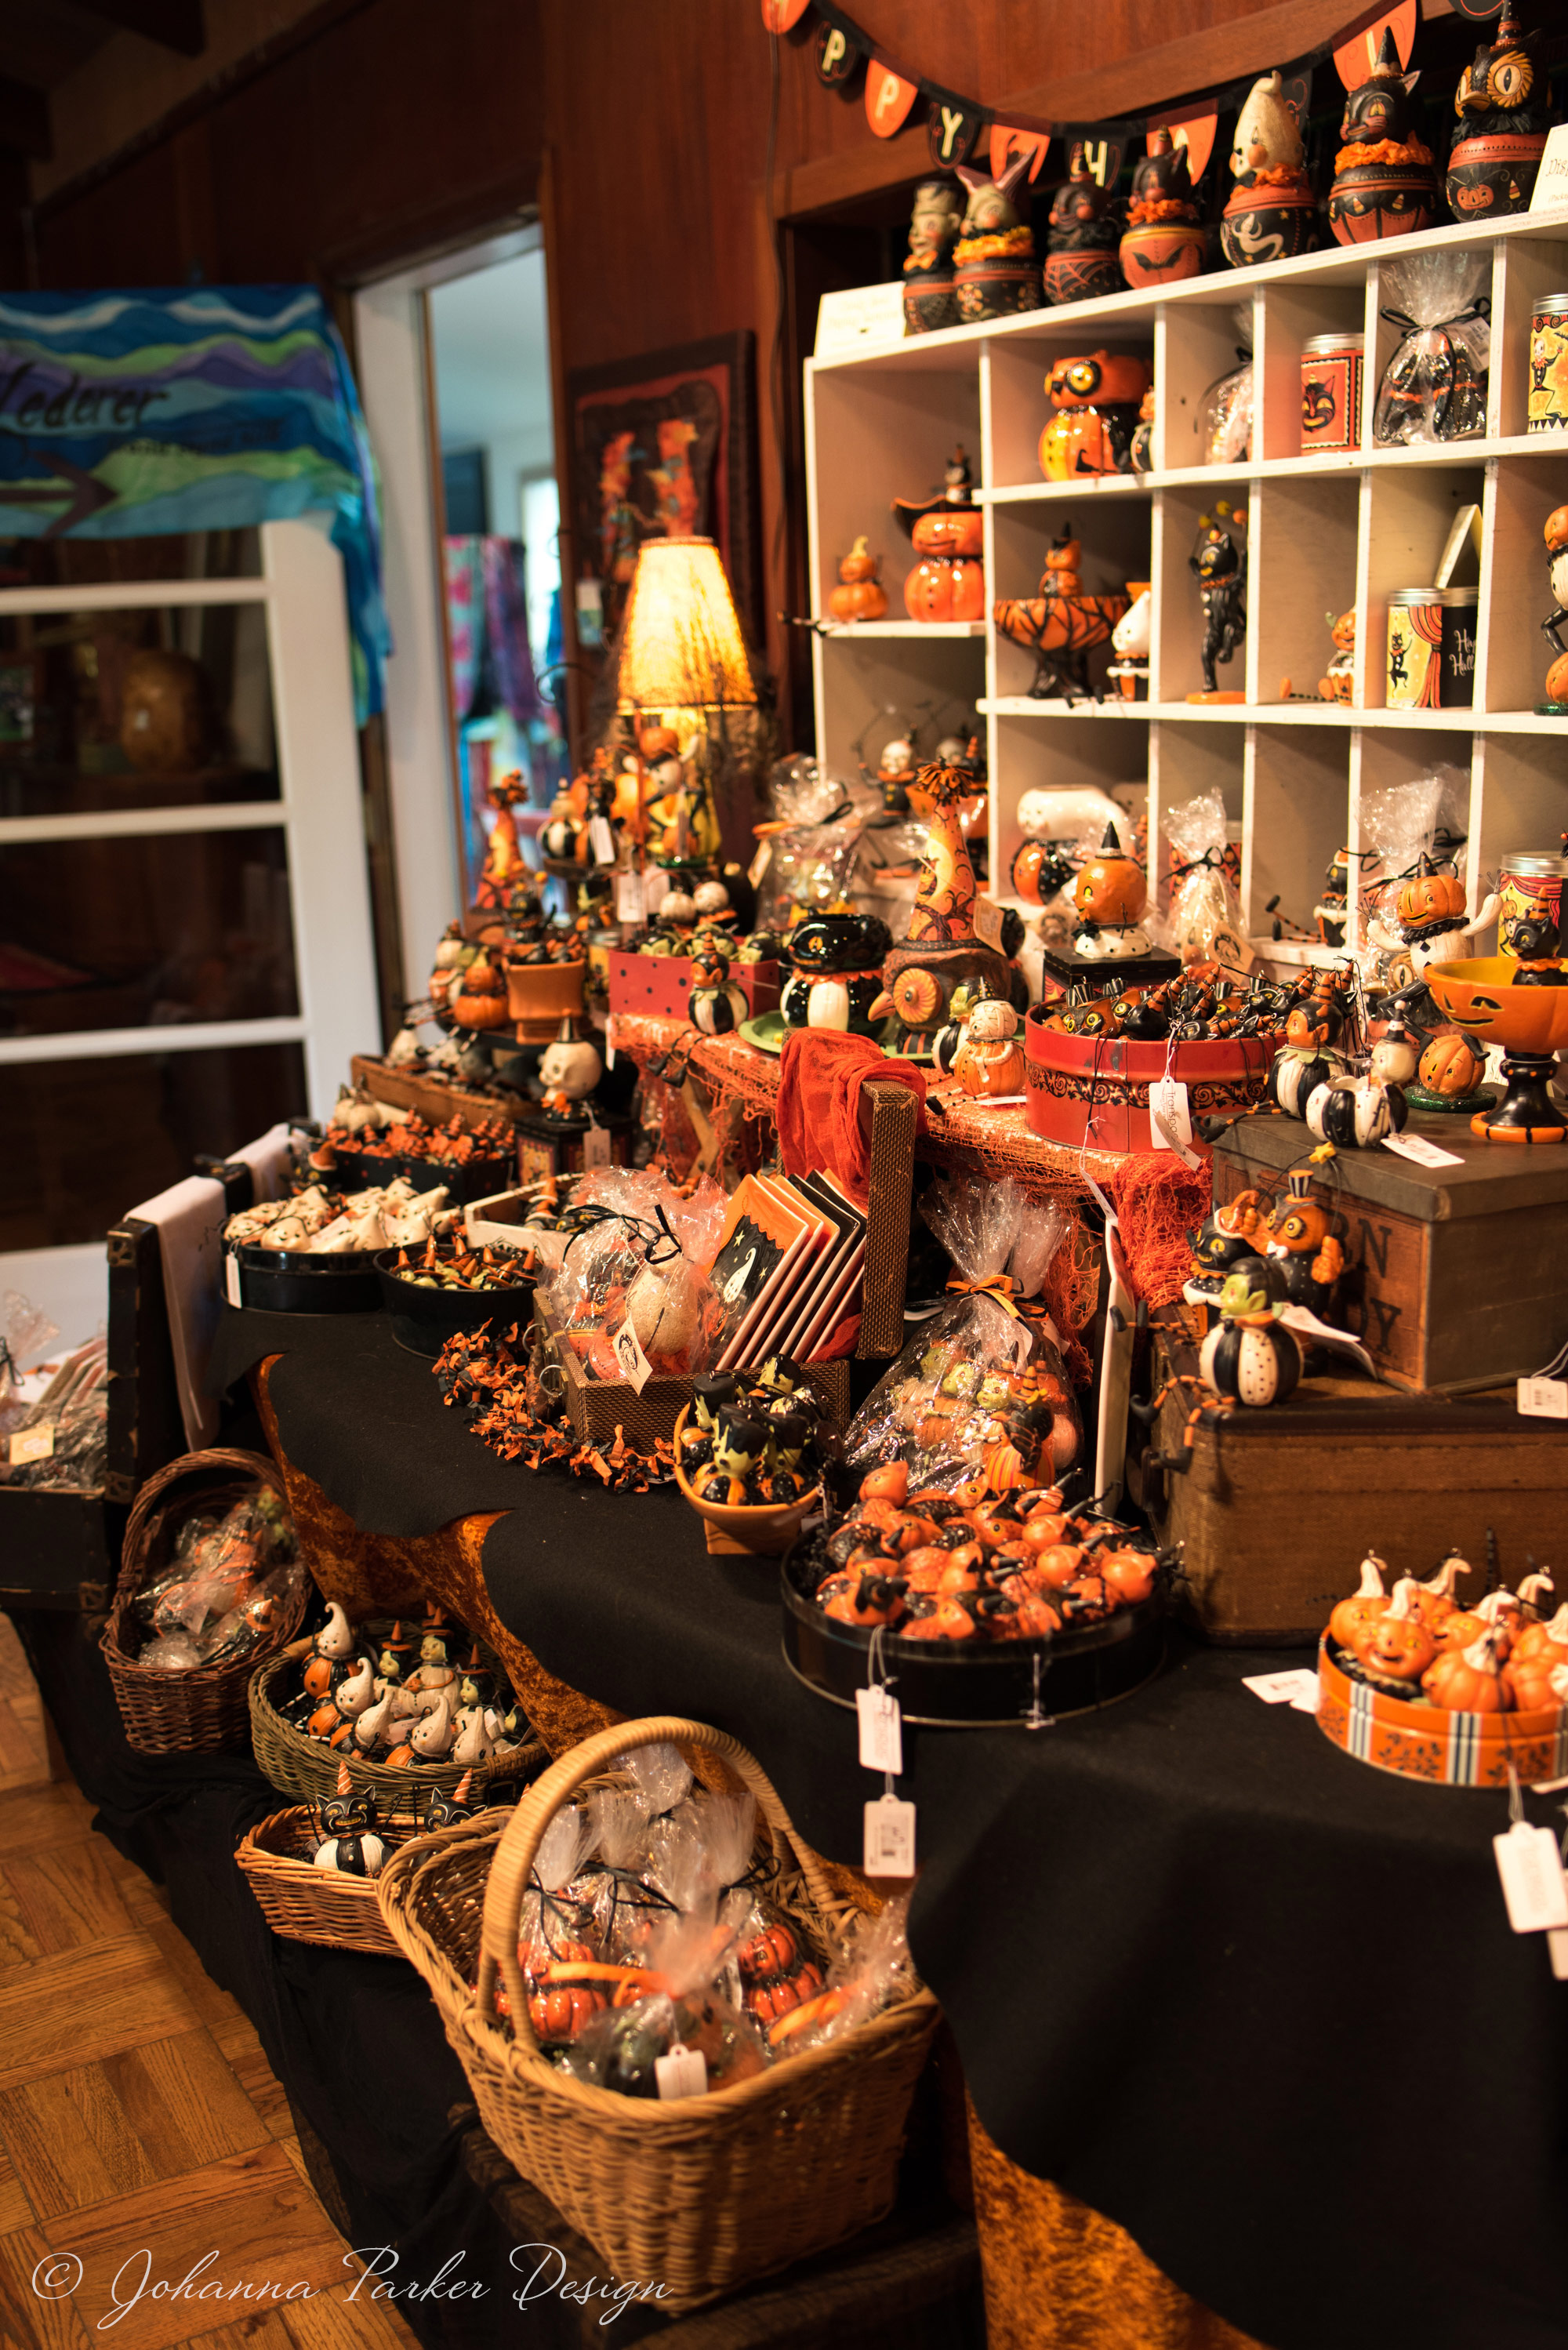 Beyond my spooky display, an open door lead the way to Ann's colorful painted silks...